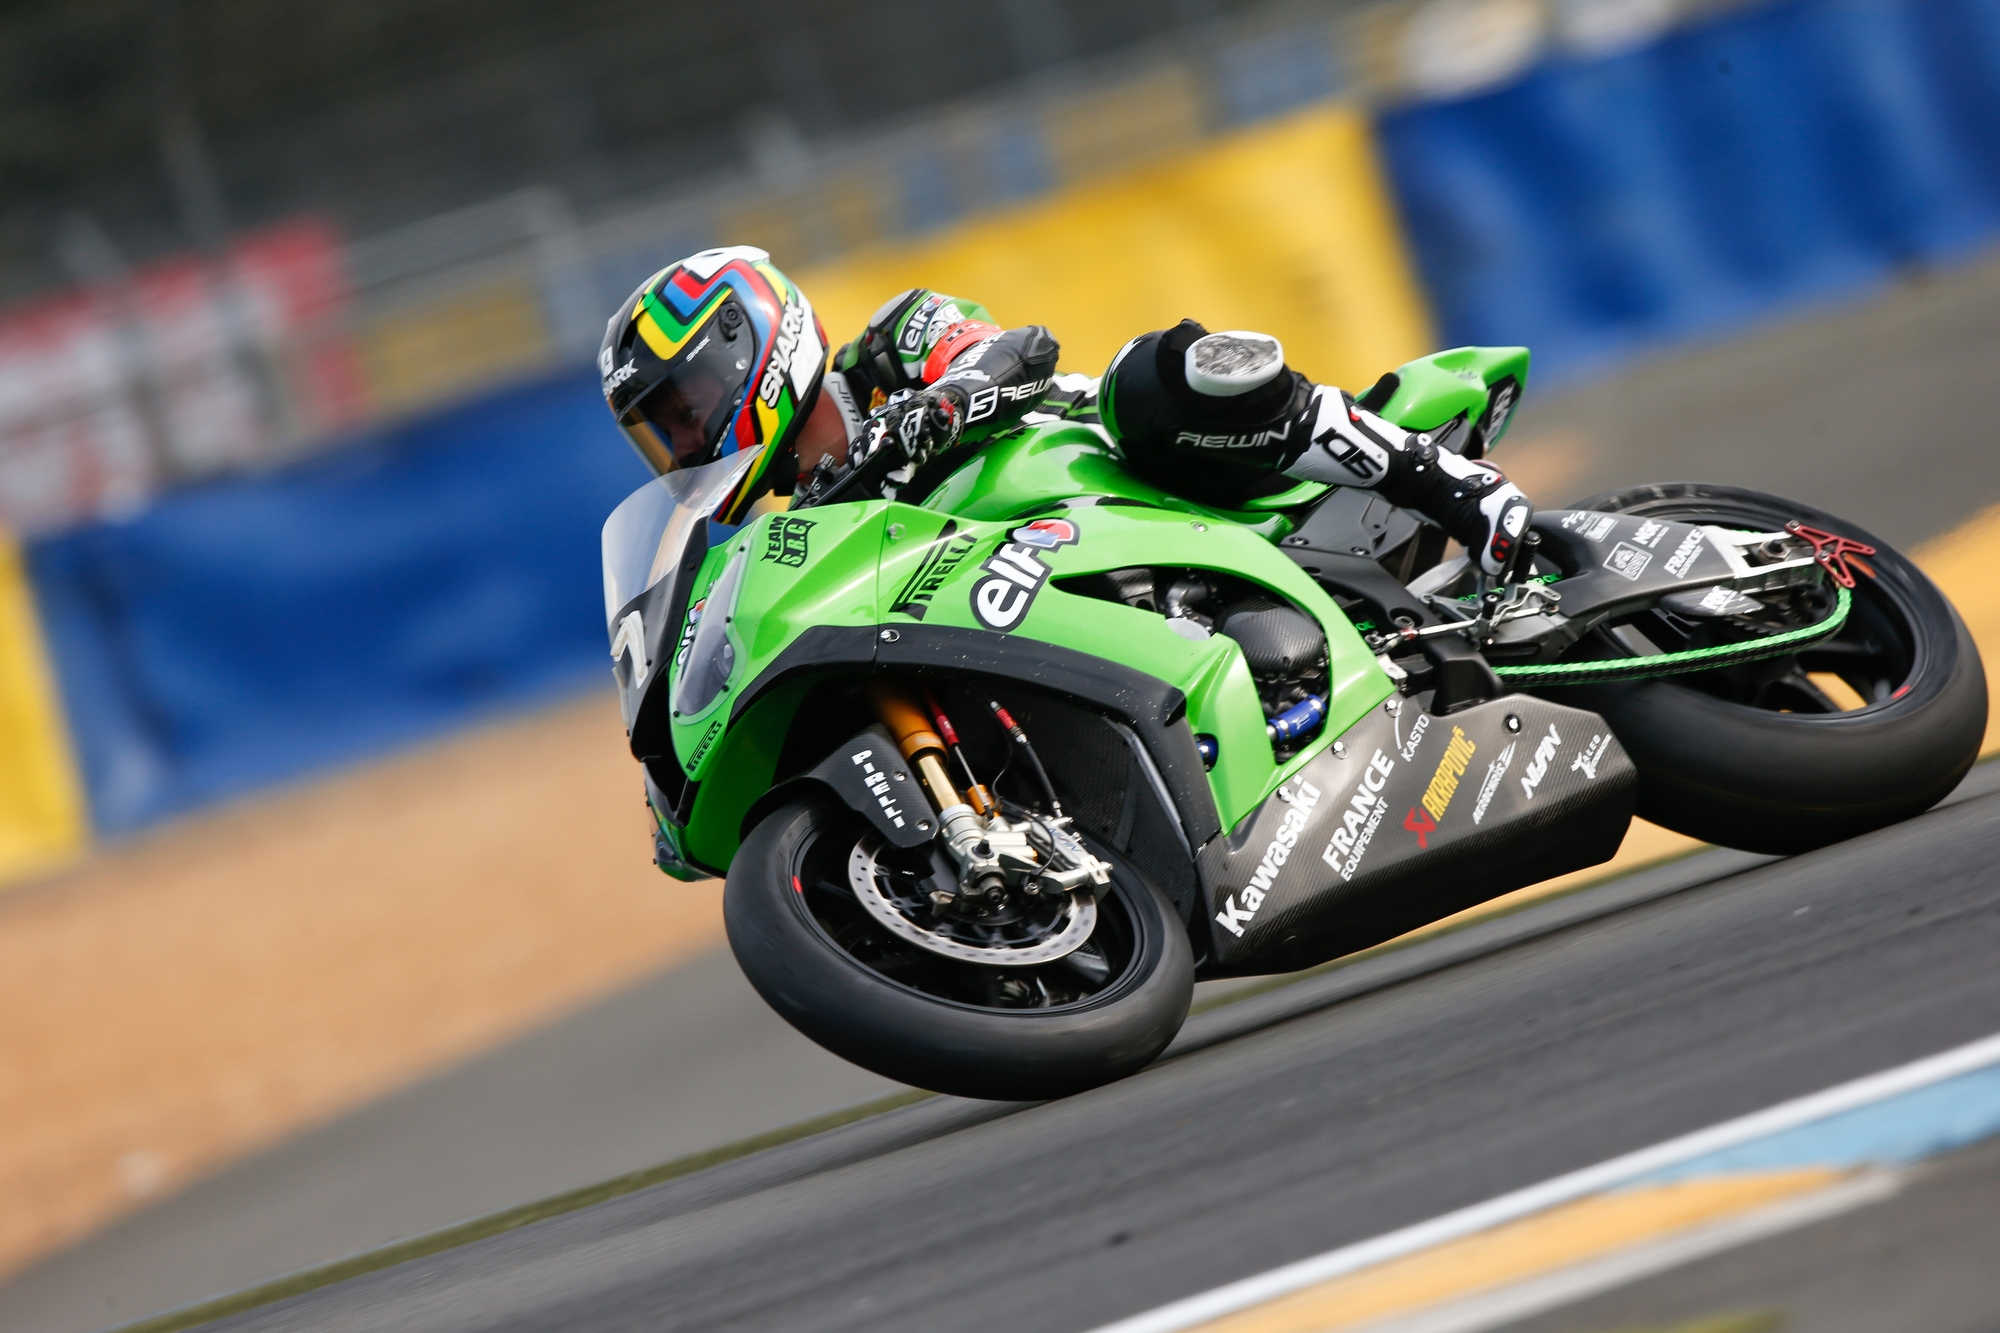 src kawasaki in pole position on 24 heures motos in le mans fim ewc endurance world championship. Black Bedroom Furniture Sets. Home Design Ideas